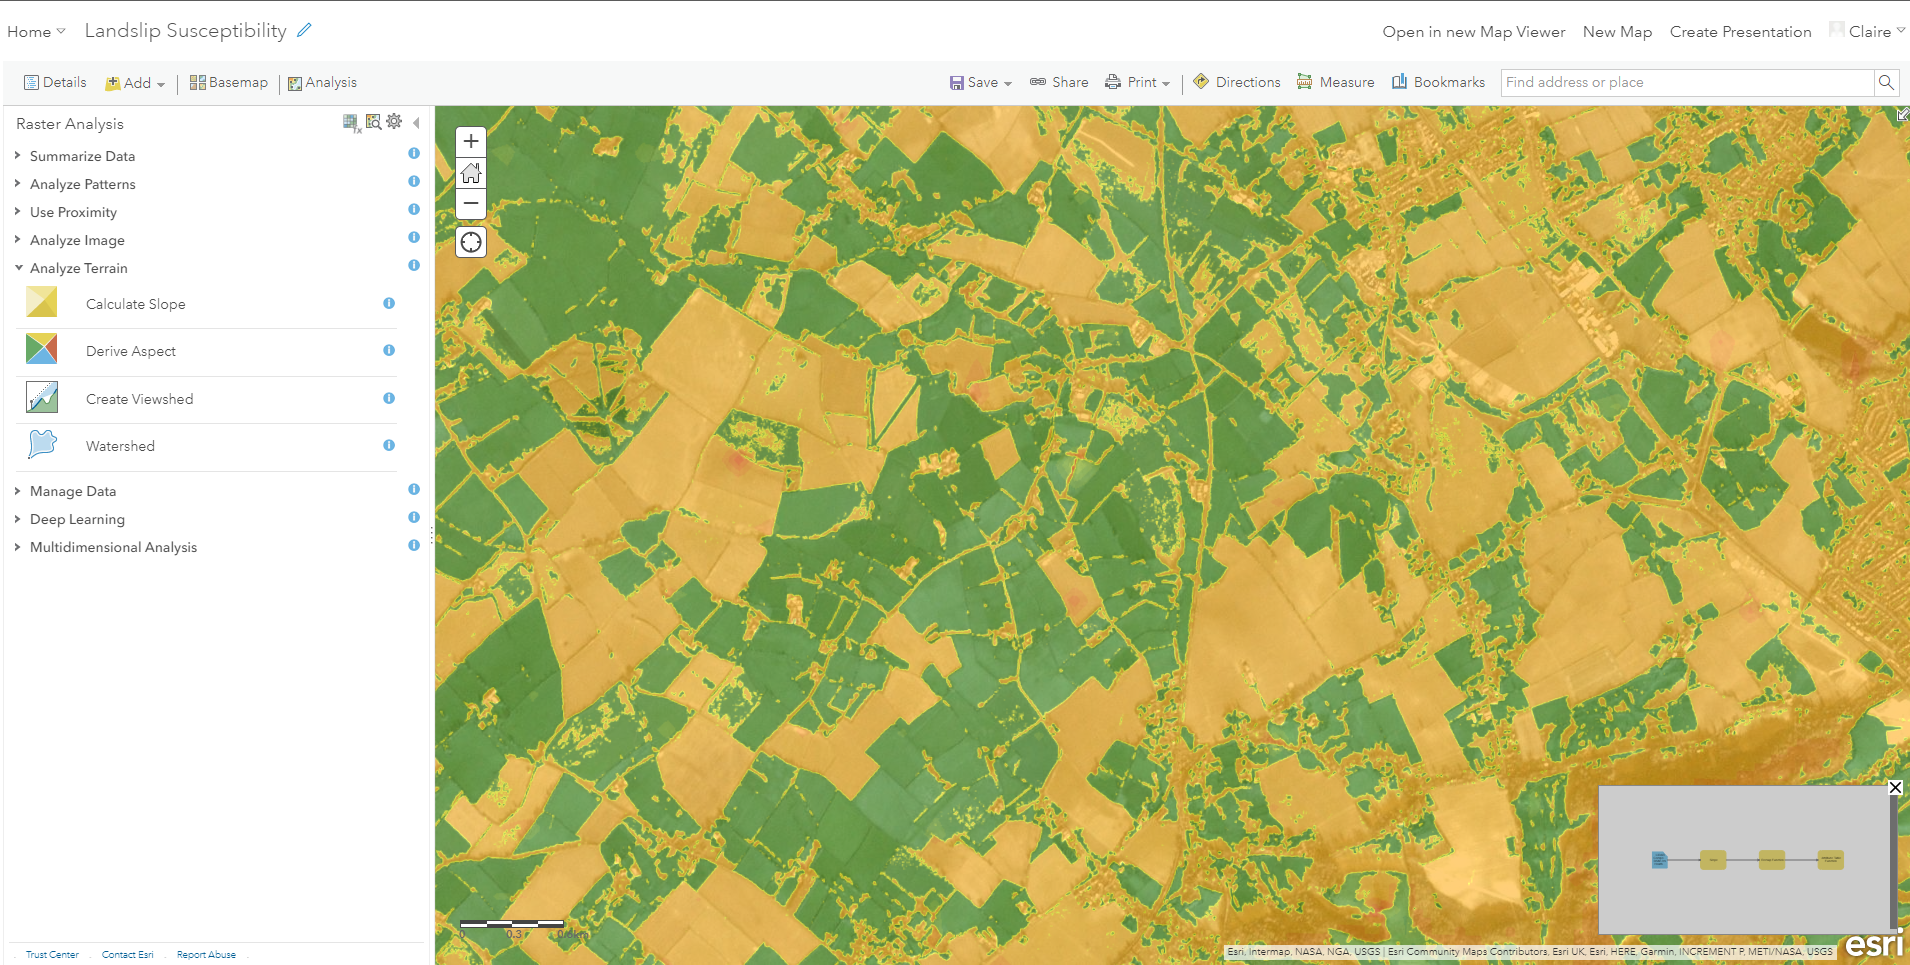 ArcGIS Image for ArcGIS Online analysis tools